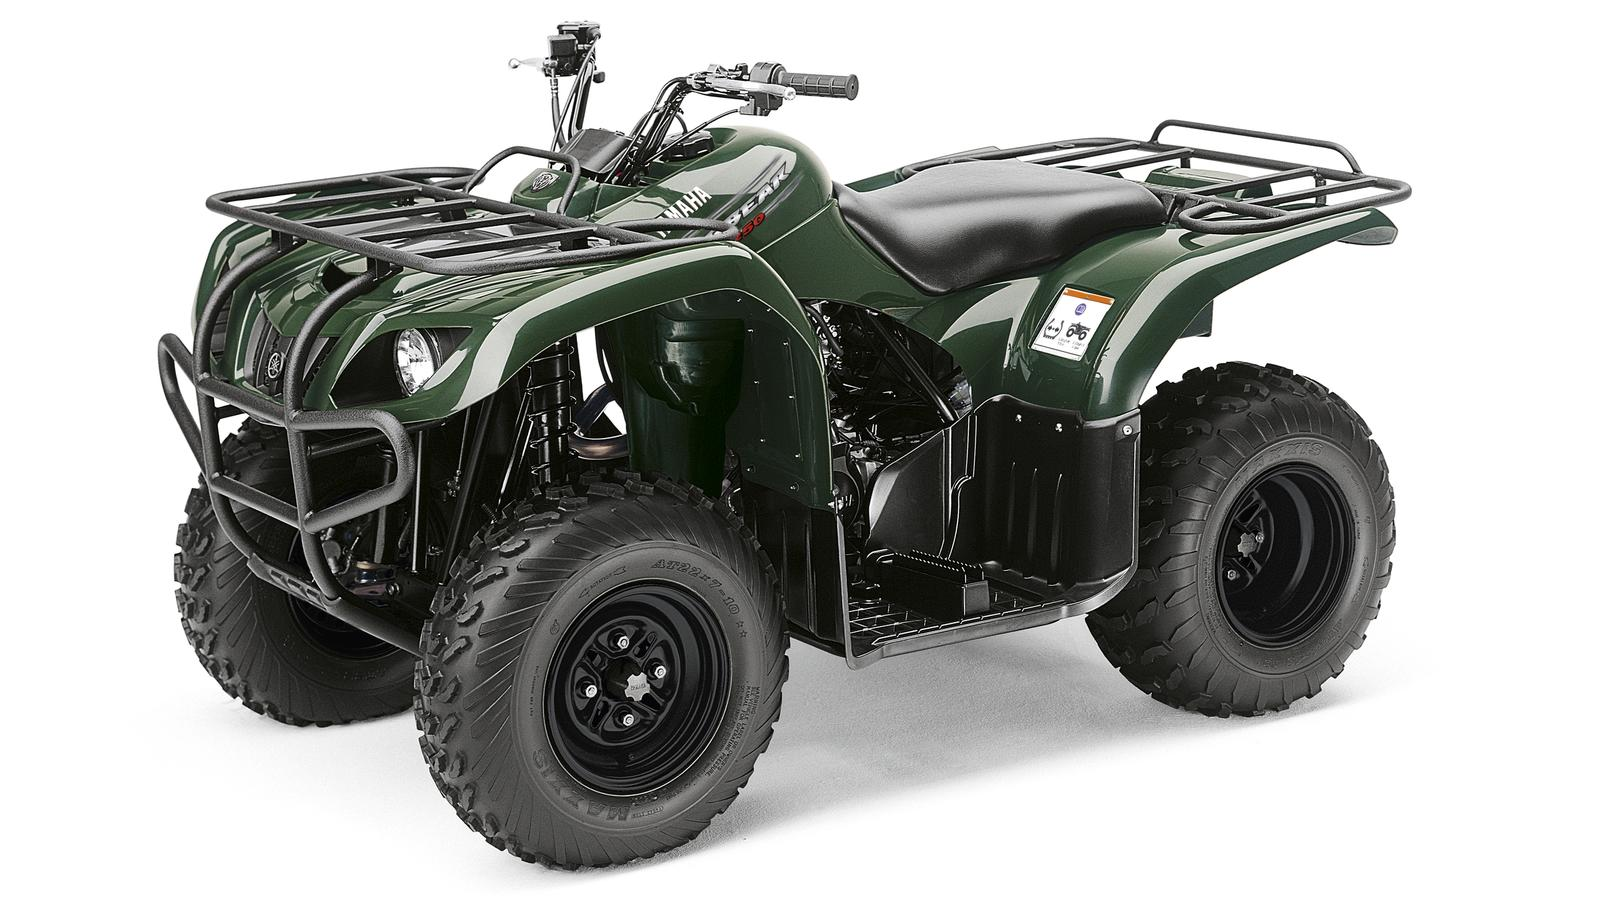 YAMAHA Big Bear 250  2011 photo 4